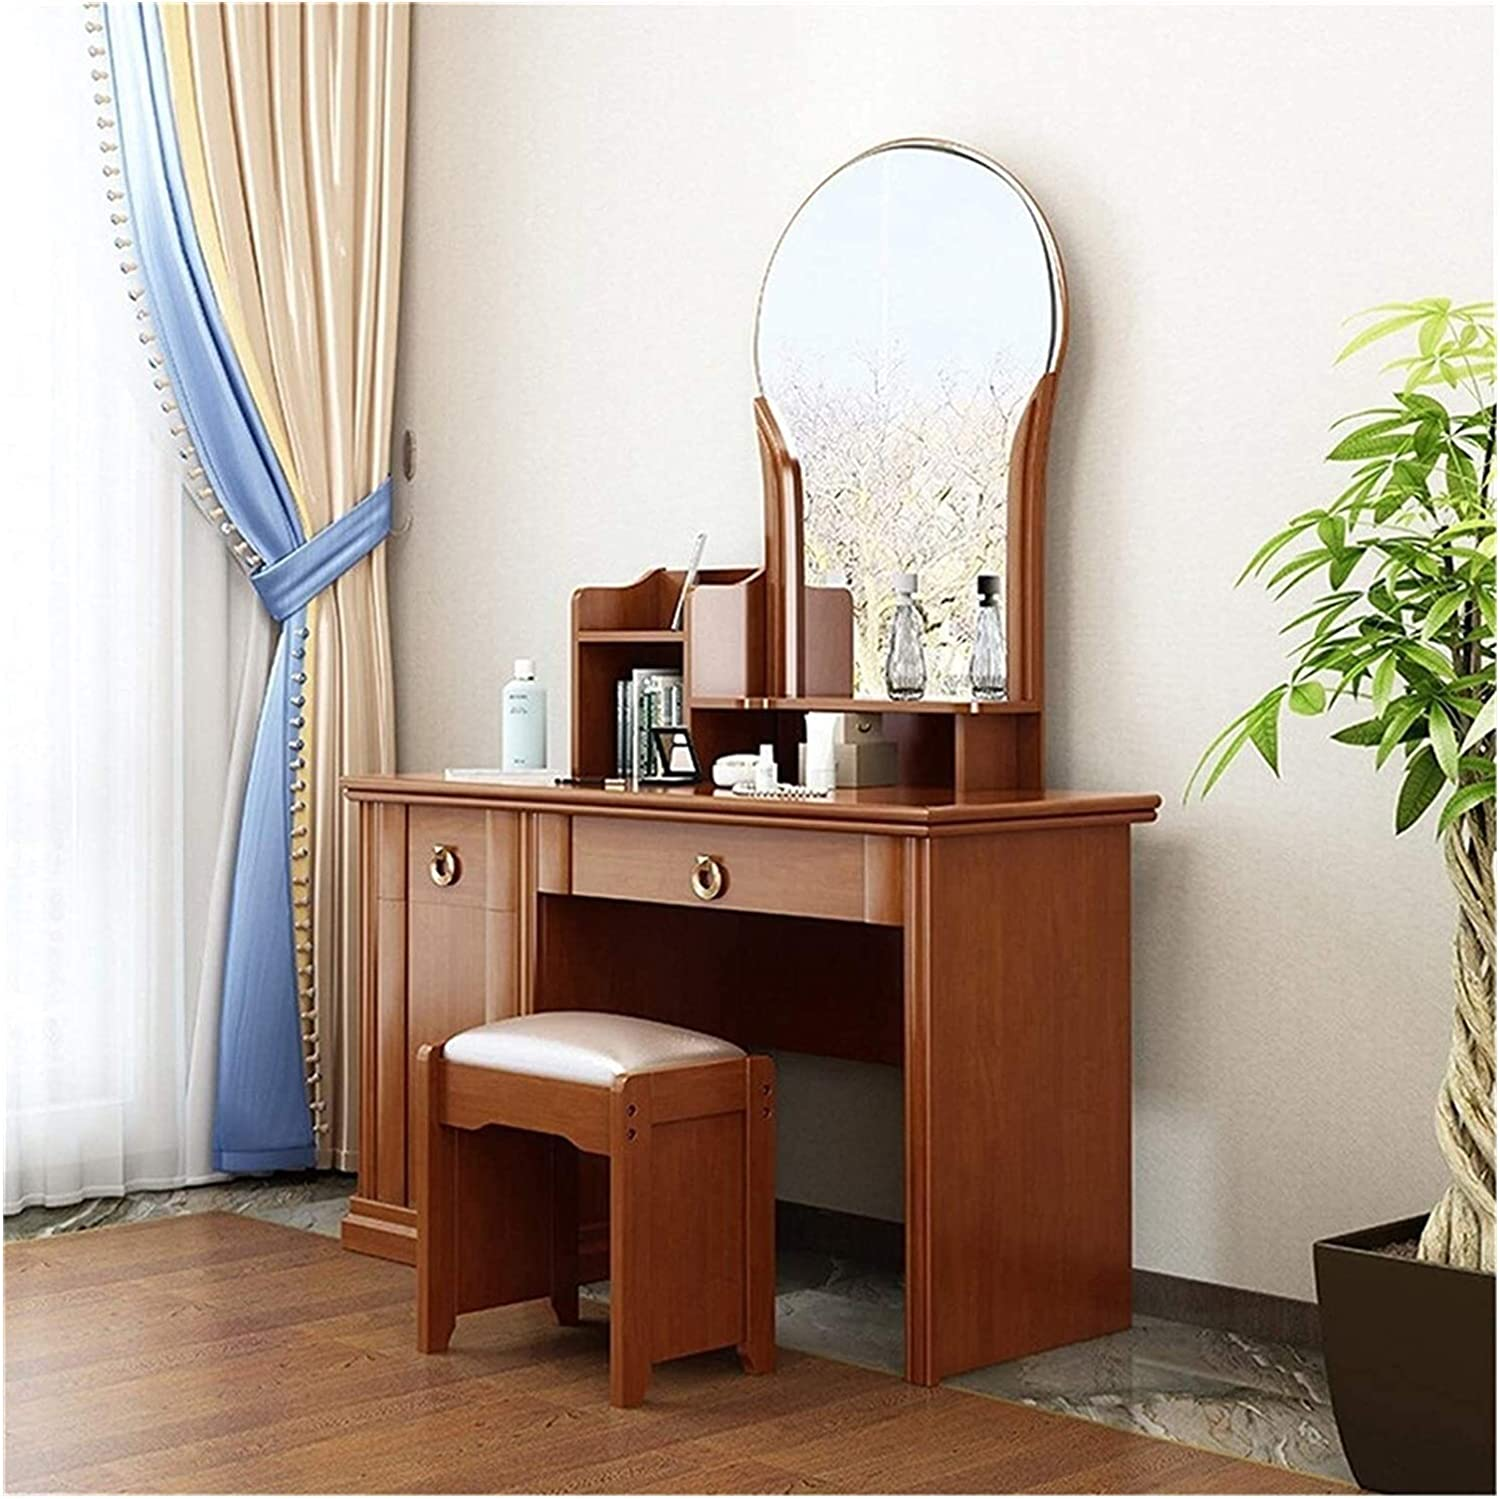 LLNN Simple Boston Mall and Stylish Makeup Max 46% OFF Vanity Set Ma 2 in 1 for Bedroom